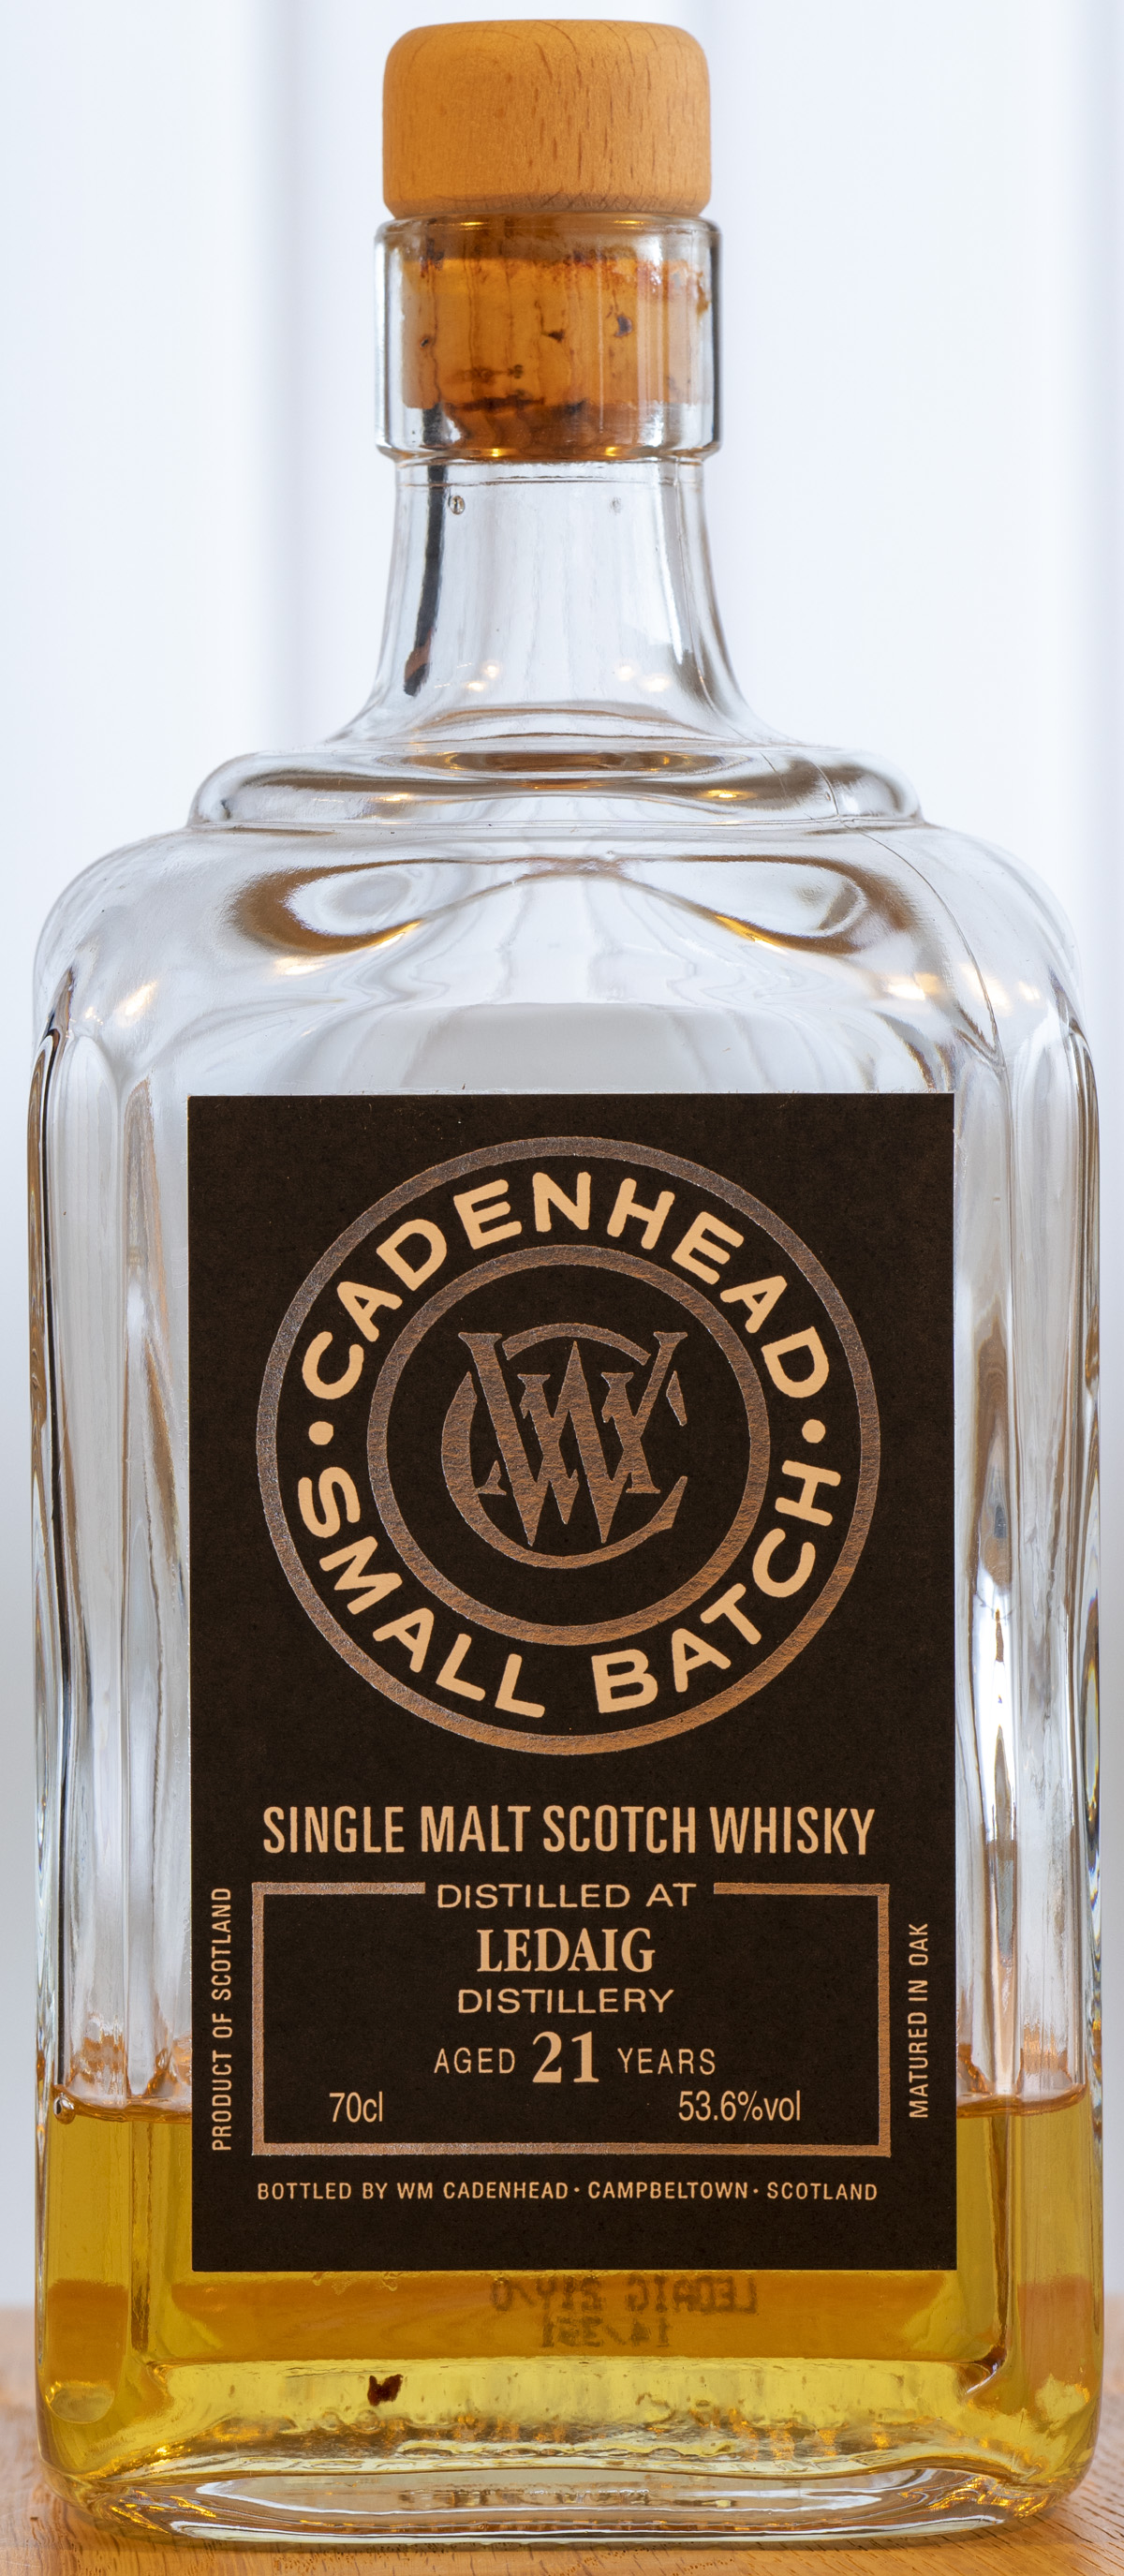 Billede: PHC_3914 - Cadenhead Small Batch Ledaig 21y - bottle front.jpg